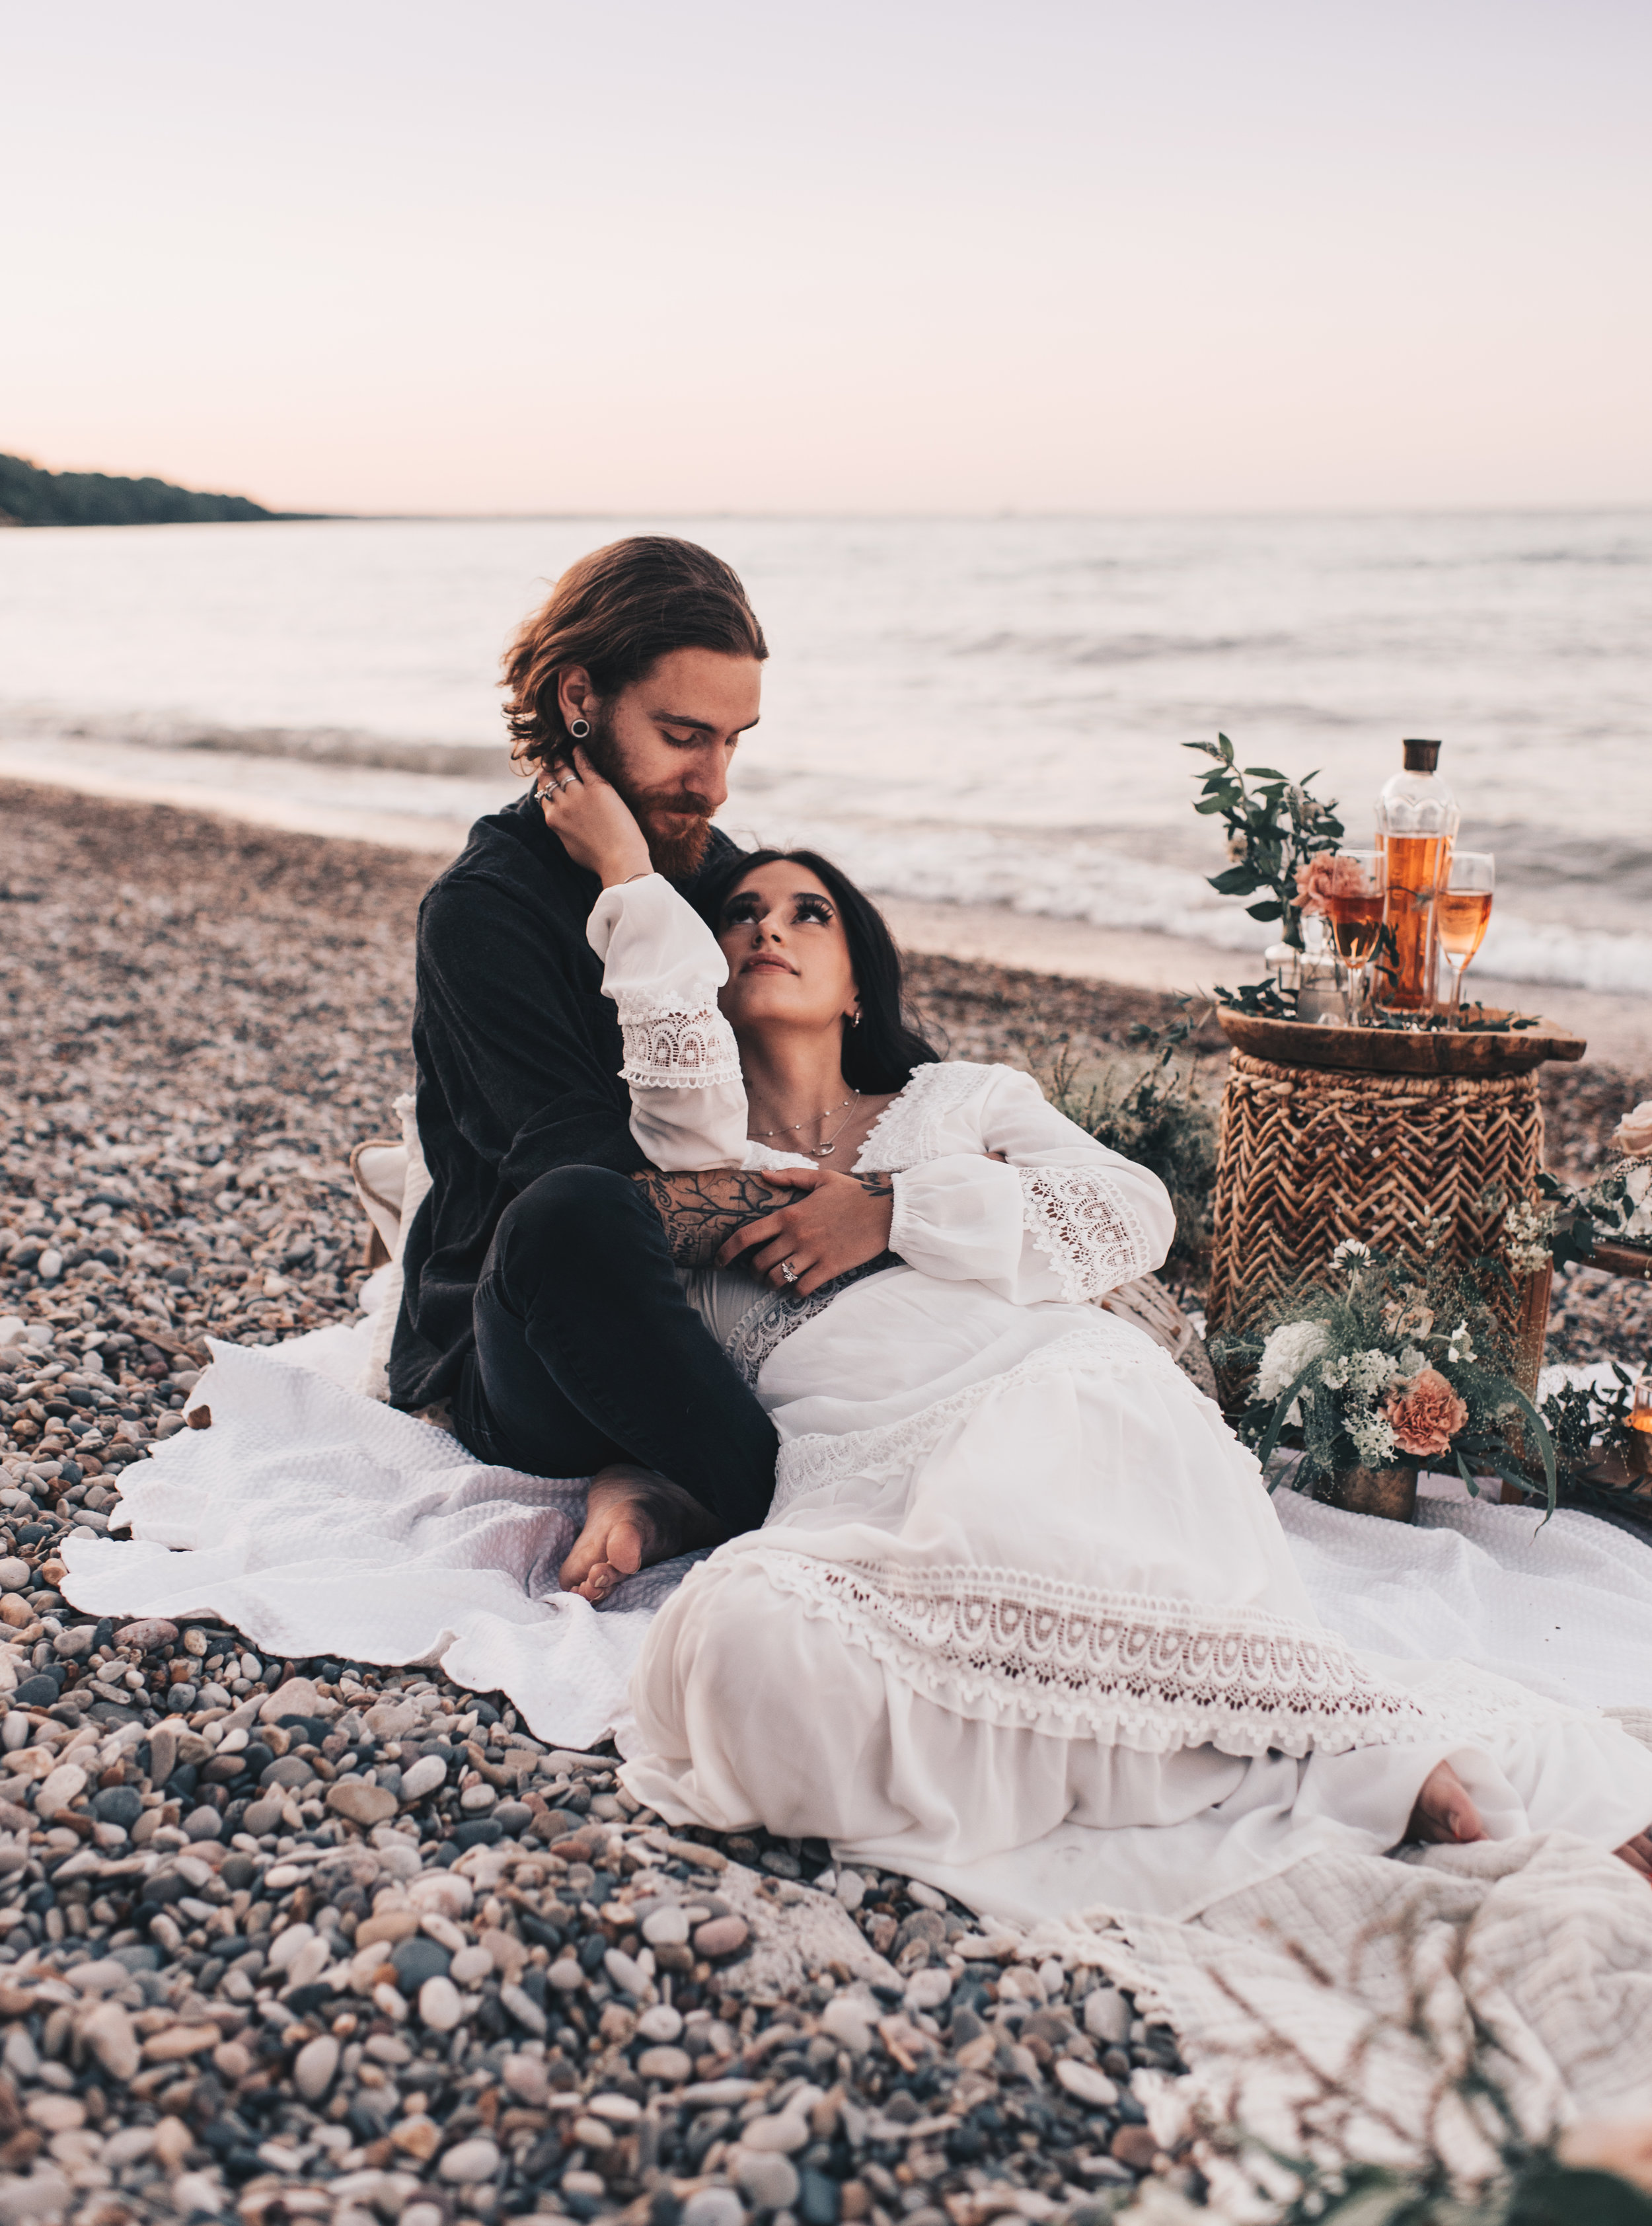 Lake Michigan Beach Session, Lake Michigan Beach Elopement, Summer Beach Elopement, Dreamy Beach Elopement, Coastal Beach Elopement, Romantic Boho Beach Picnic Elopement